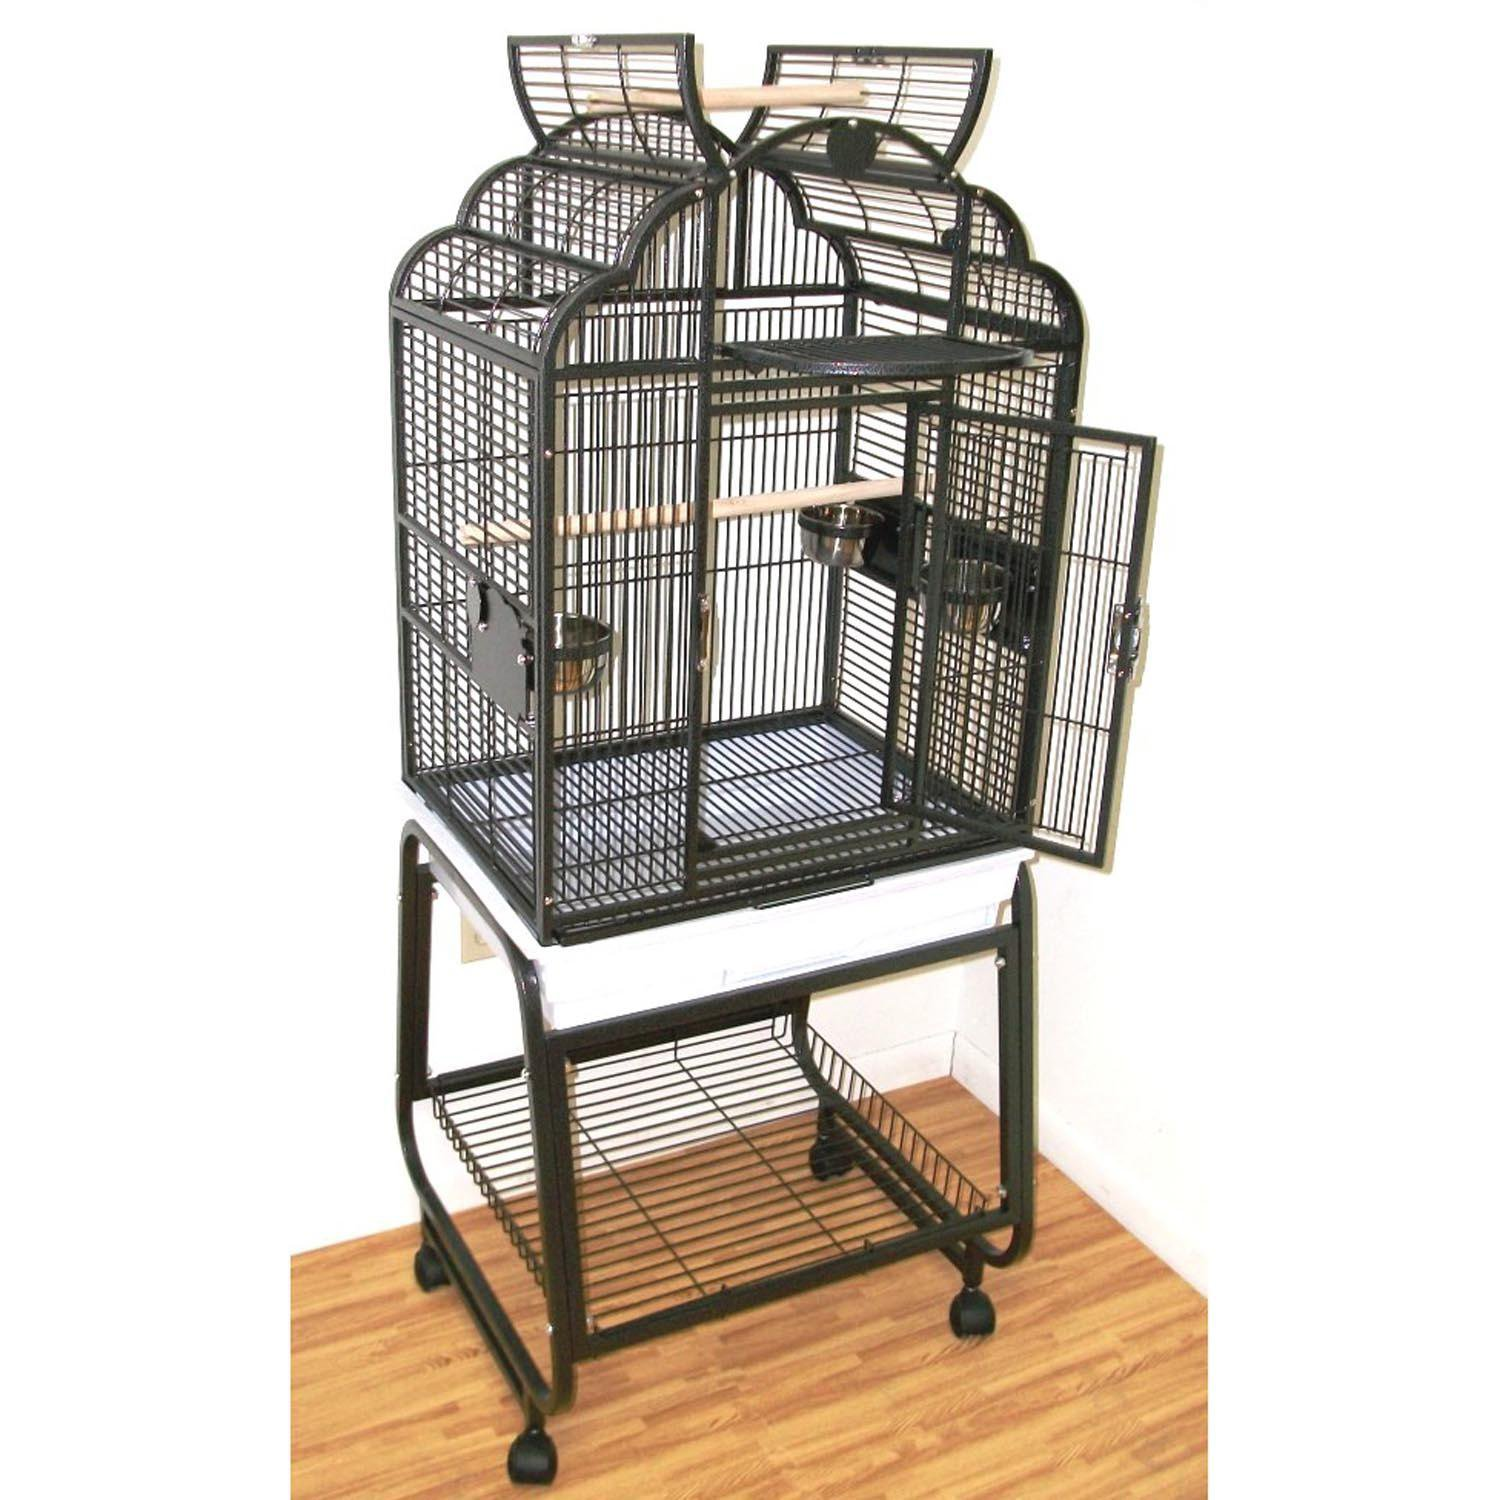 HQ Opening Victorian Top with Cart Stand Bird Cage in Black